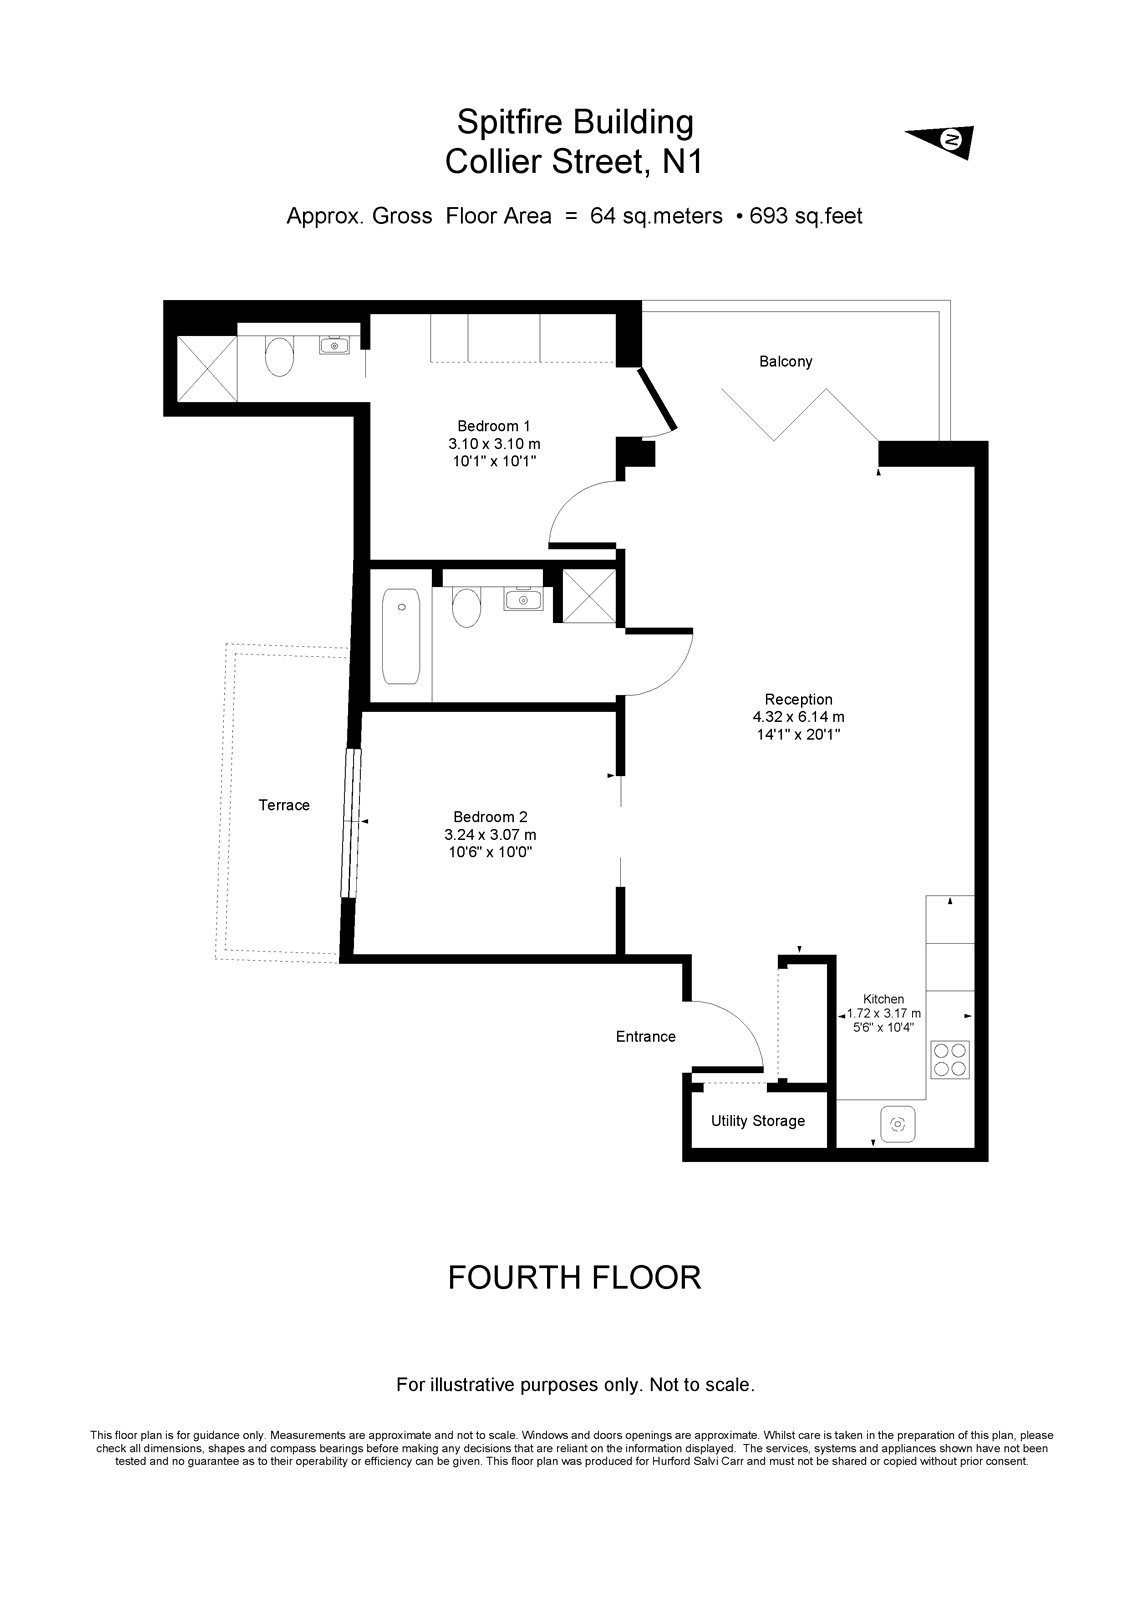 Spitfire Building, 70 Collier Street, London, N1 floorplan